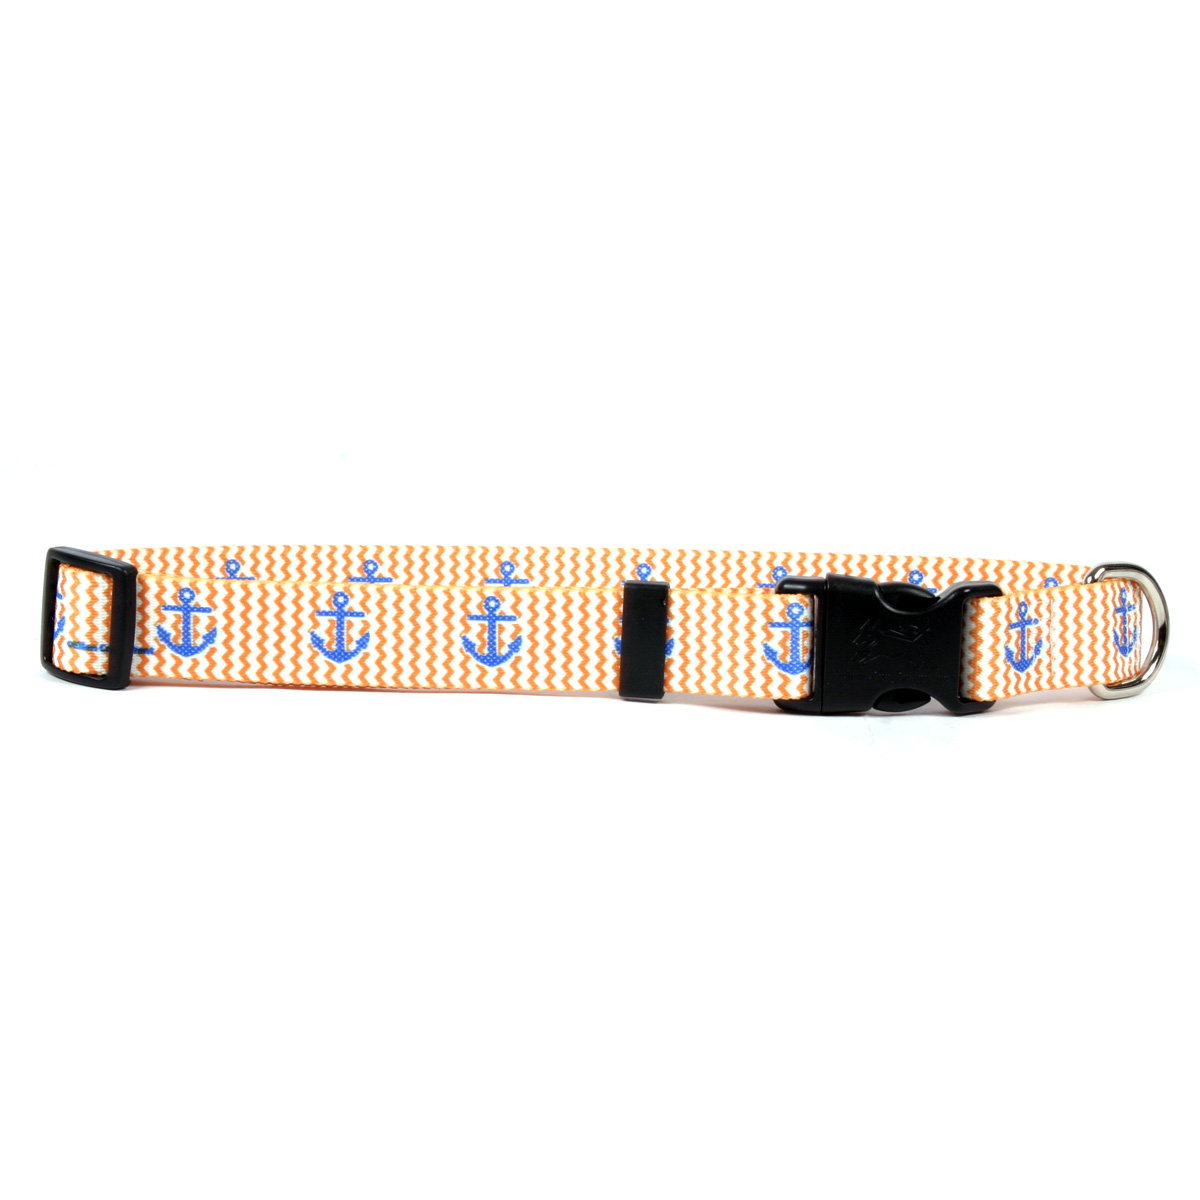 Anchors Away Standard Dog Collar